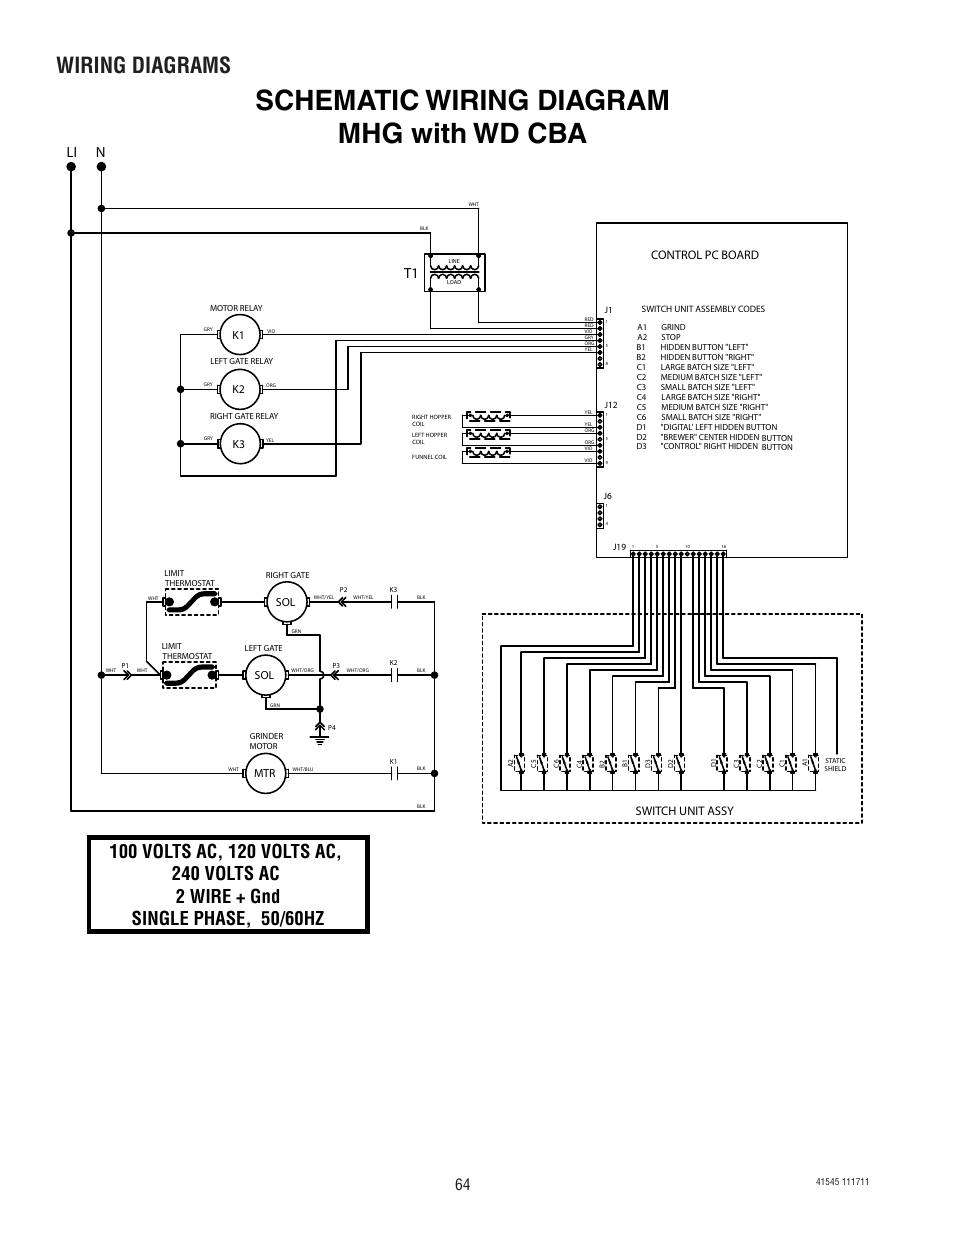 Schematic wiring diagram mhg with wd cba, Wiring diagrams, Li n | Bunn  G9-2T DBC User Manual | Page 64 / 79